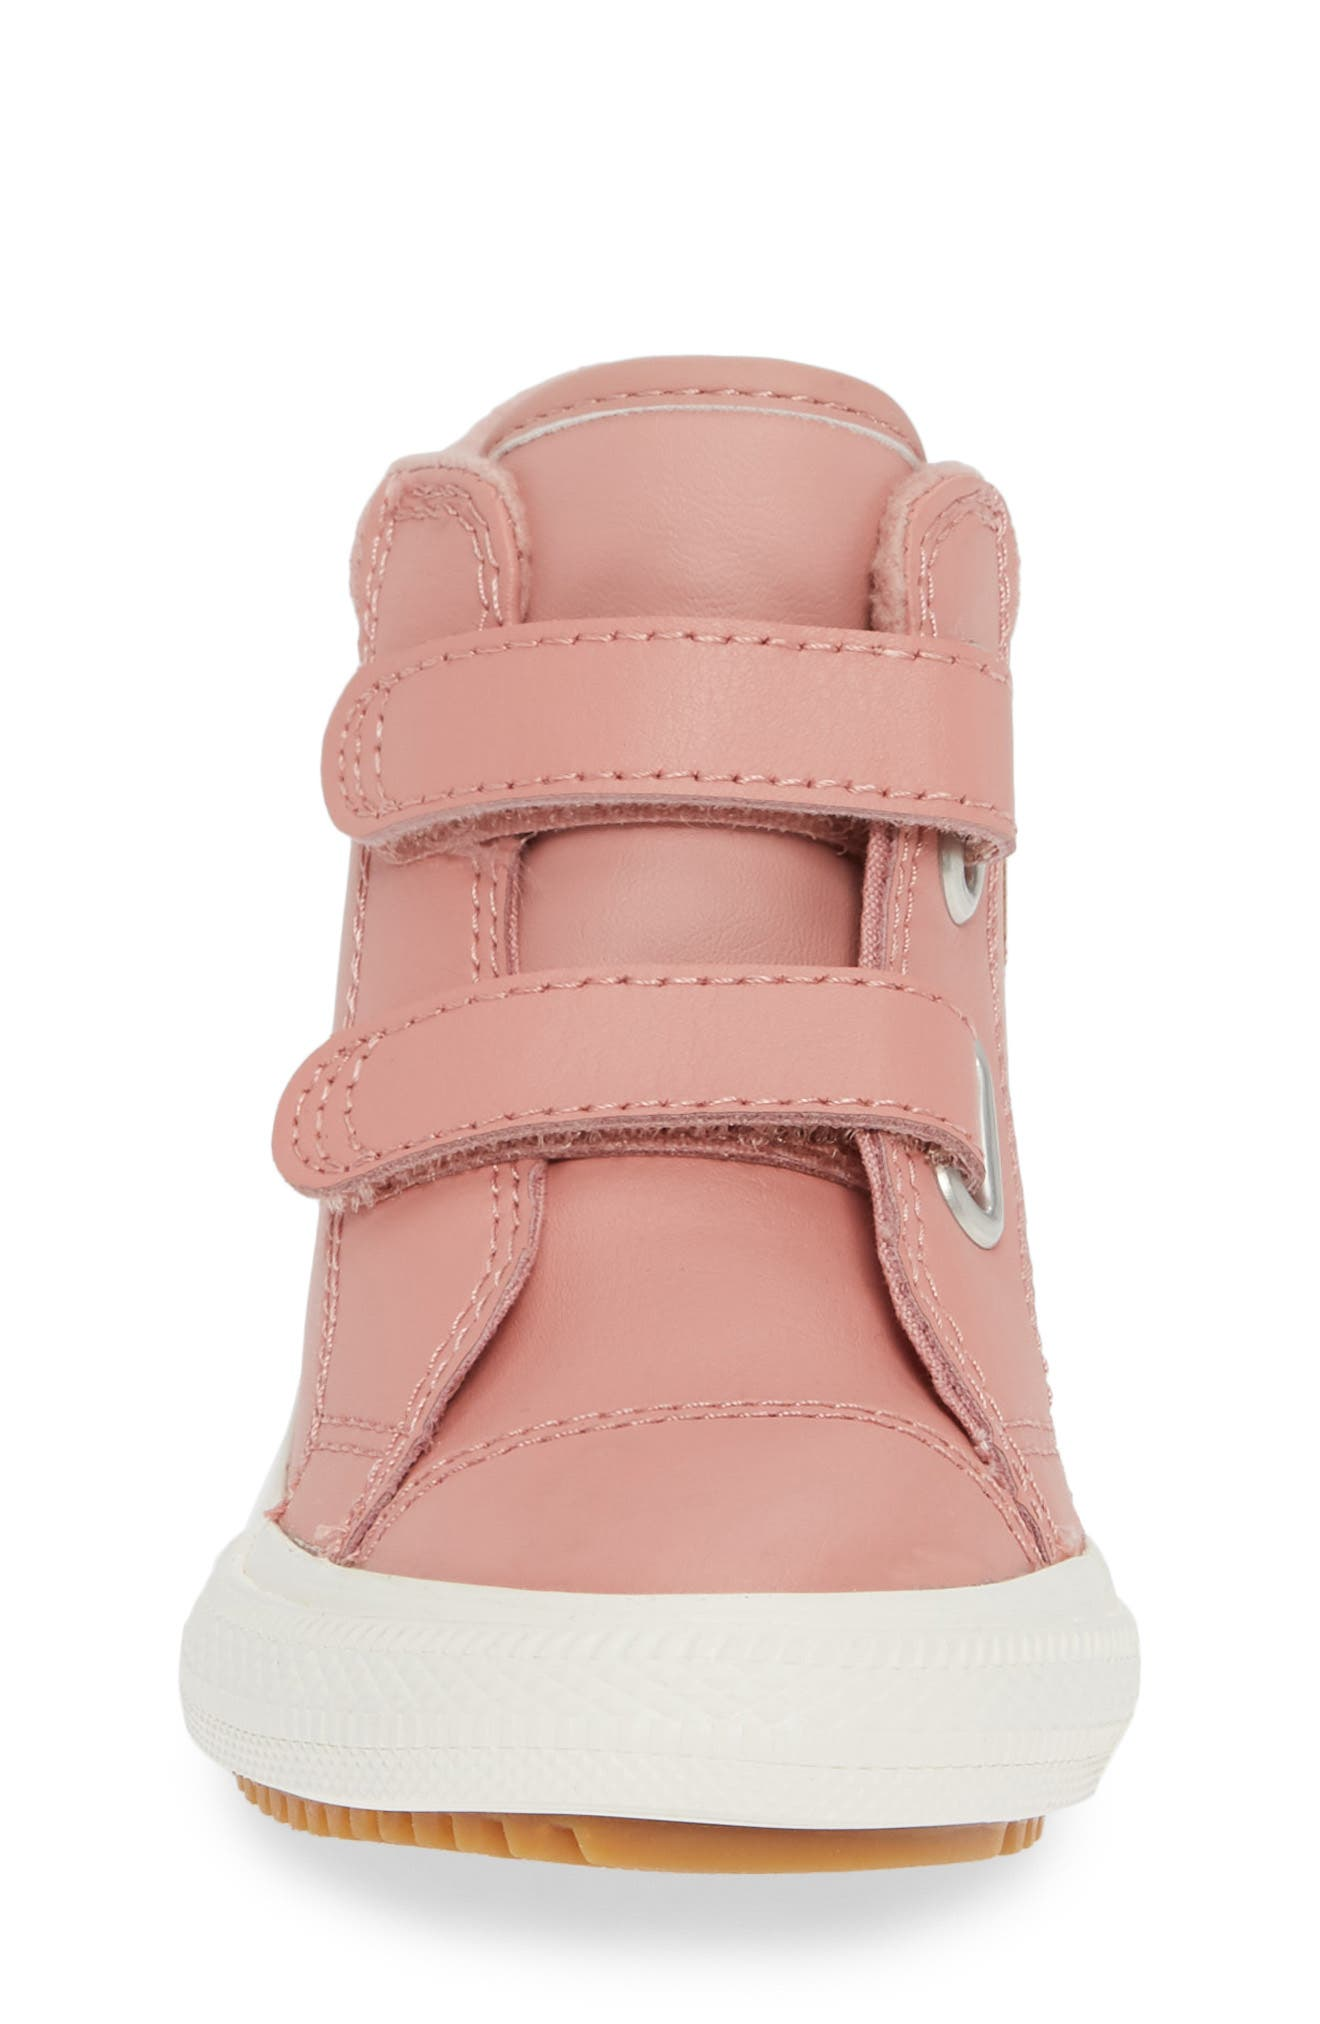 Chuck Taylor<sup>®</sup> All Star<sup>®</sup> 2V Leather High Top Sneaker,                             Alternate thumbnail 4, color,                             668